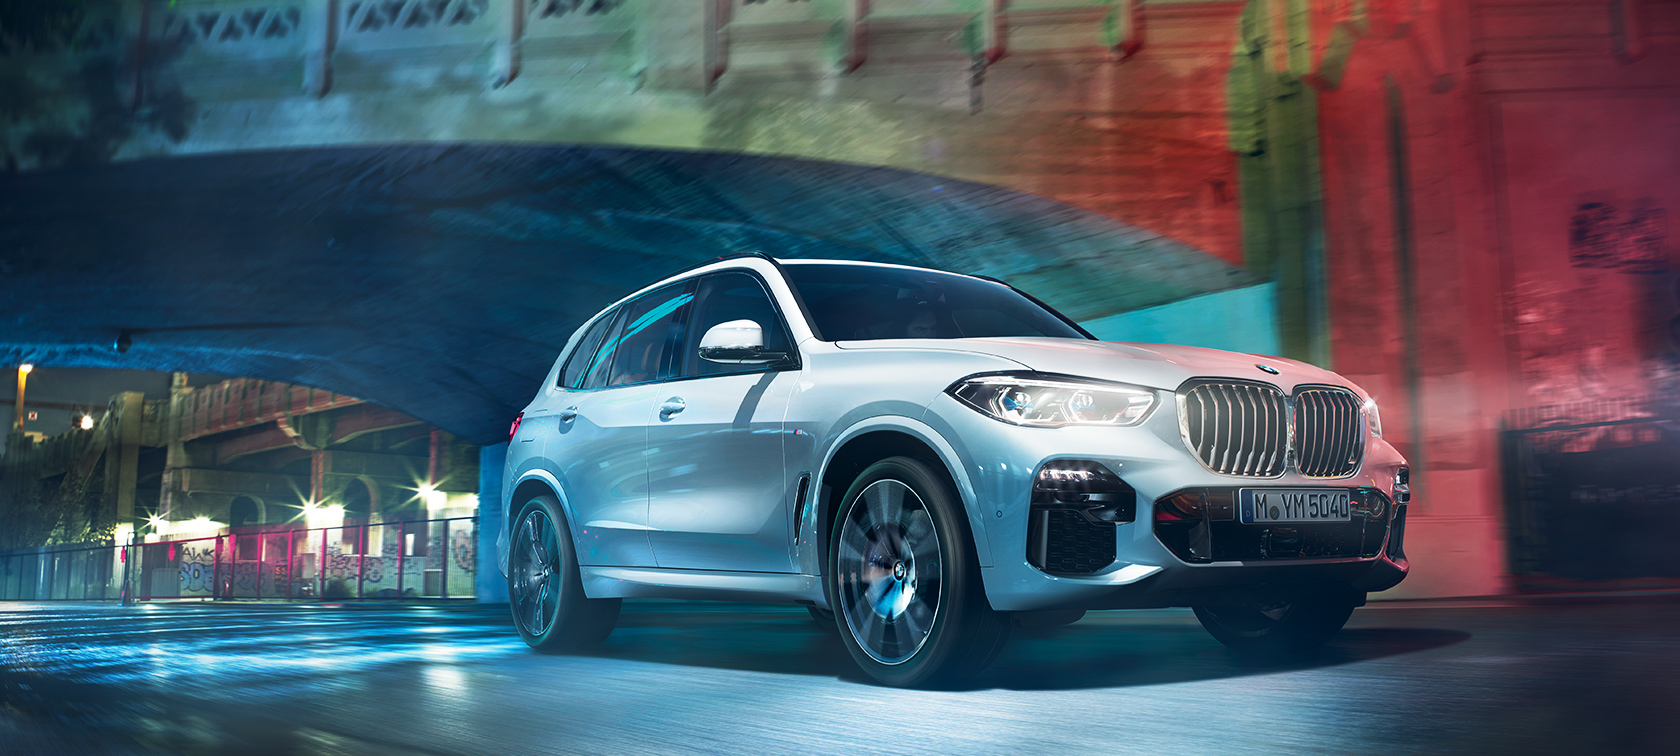 The BMW X5 travelling through the city at night